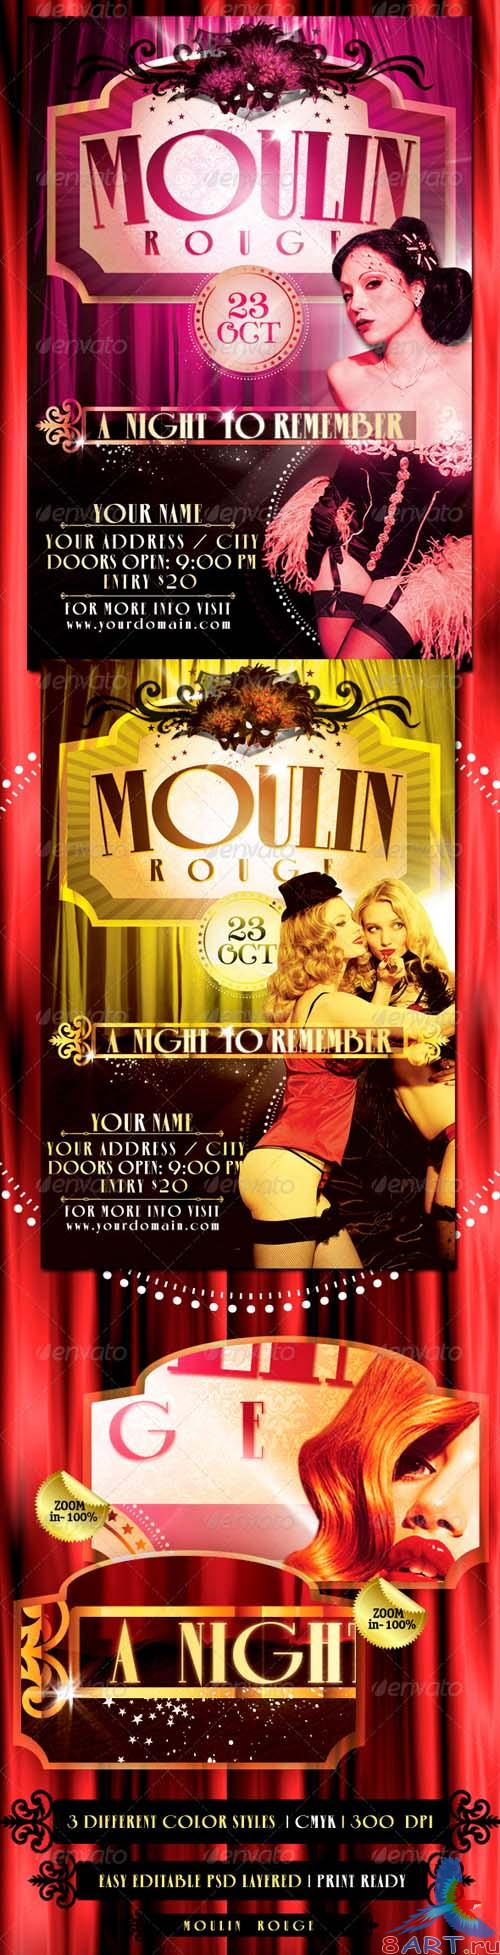 Graphicriver The Moulin Rouge Flyer Template - REUPLOAD